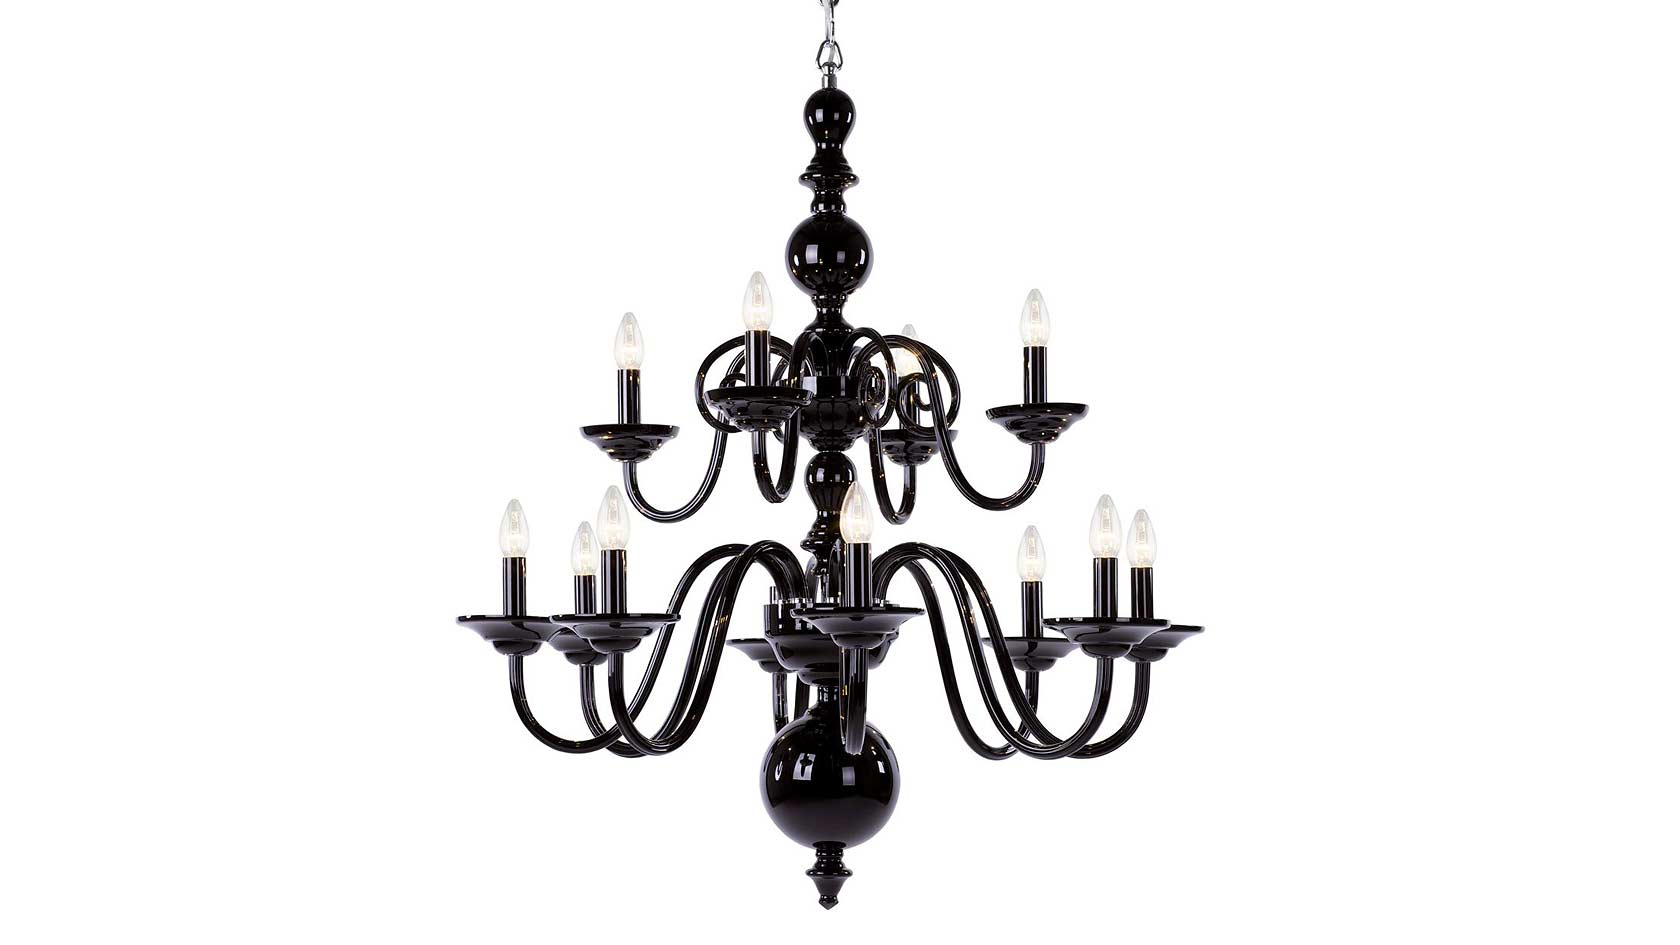 Tulip 12-Arm Chandelier in Black Hyalit